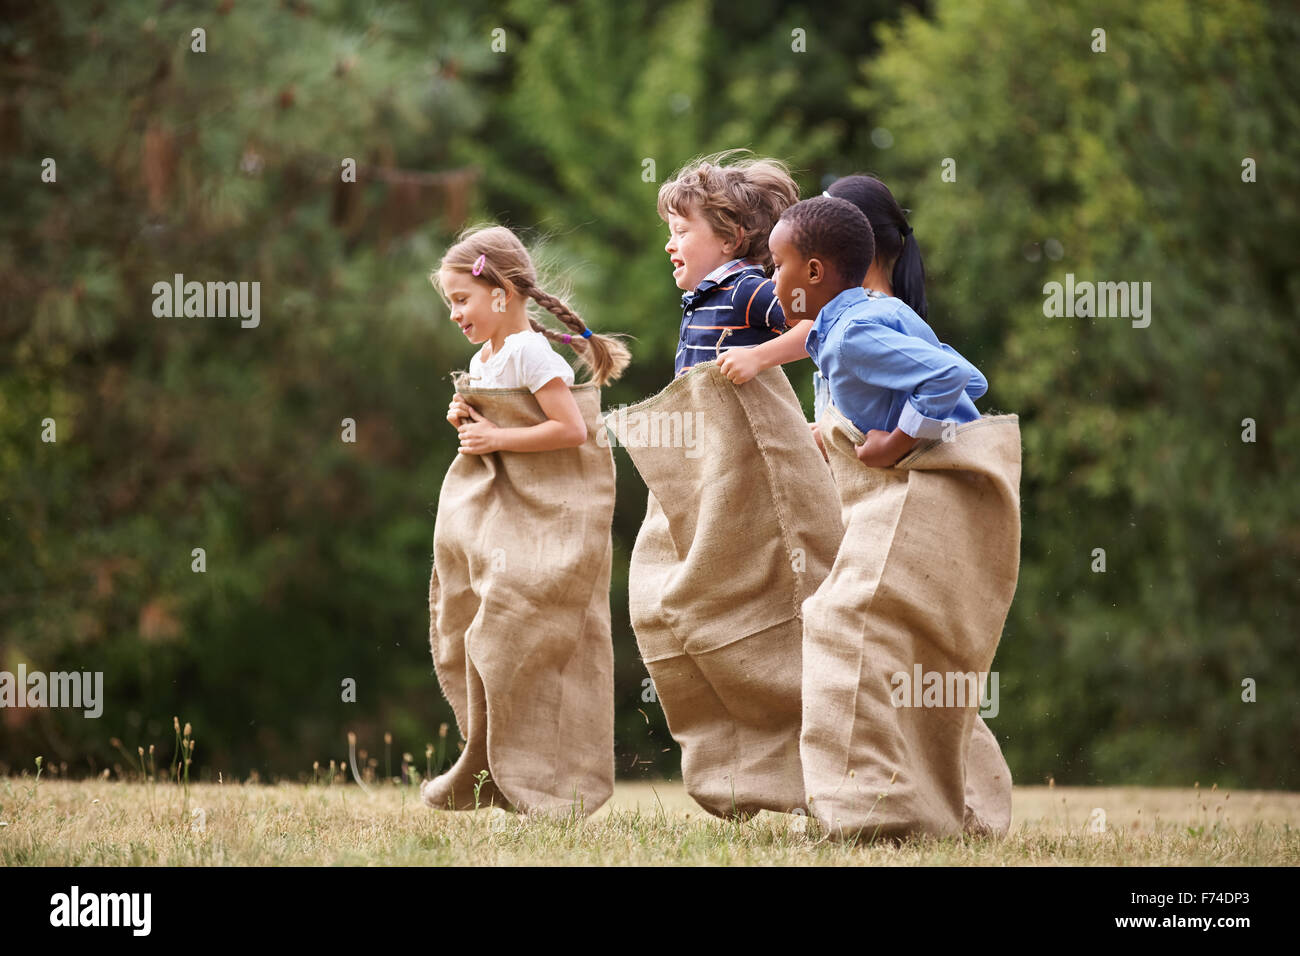 Interracial group of kids competing at a sack race in summer - Stock Image